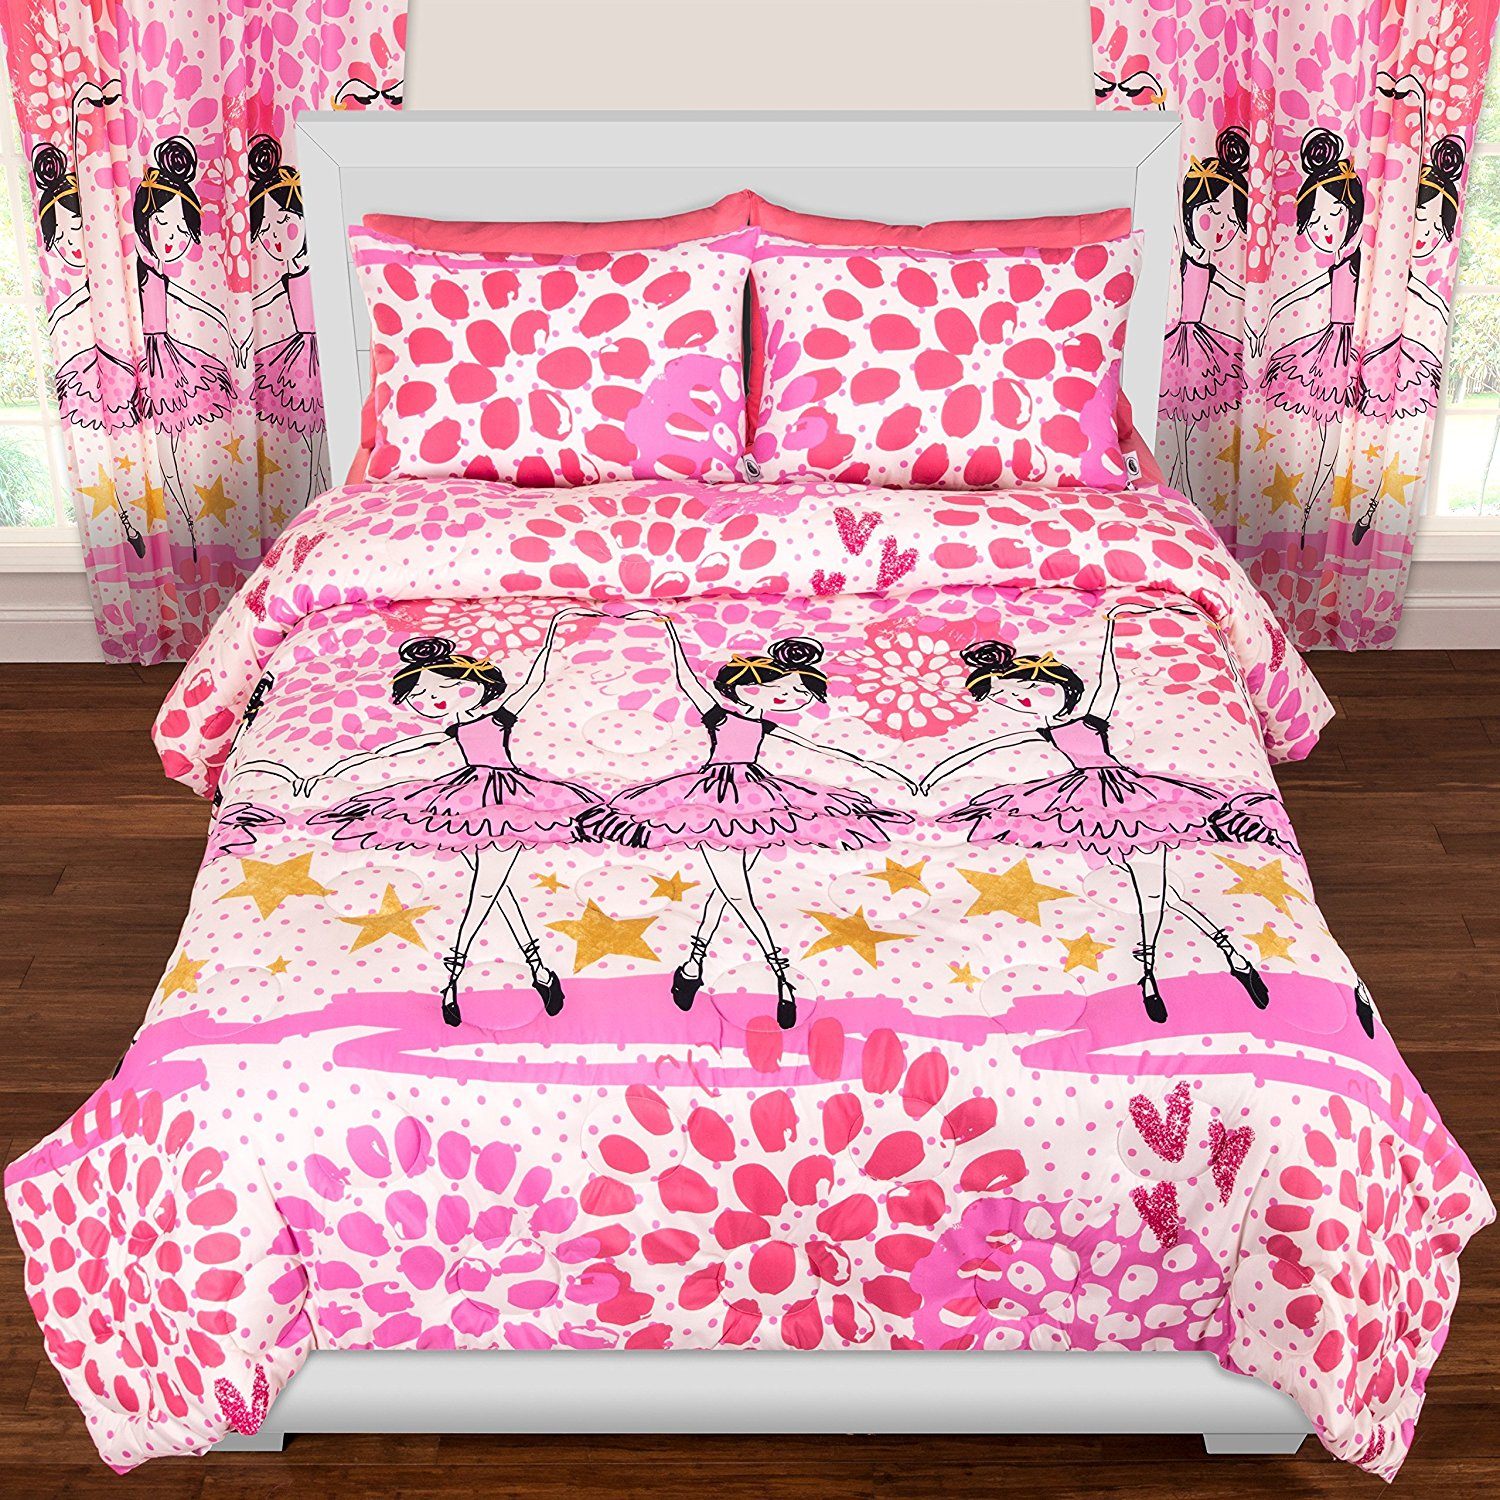 D&H 2 Piece Girls Hot Pink White Gold Dancing Ballerina Theme Comforter Twin Set, Beautiful Giry All Over Floral Ballet Dancer Bedding, Multi Pretty Princess Flower Star Themed Pattern, Black Gold